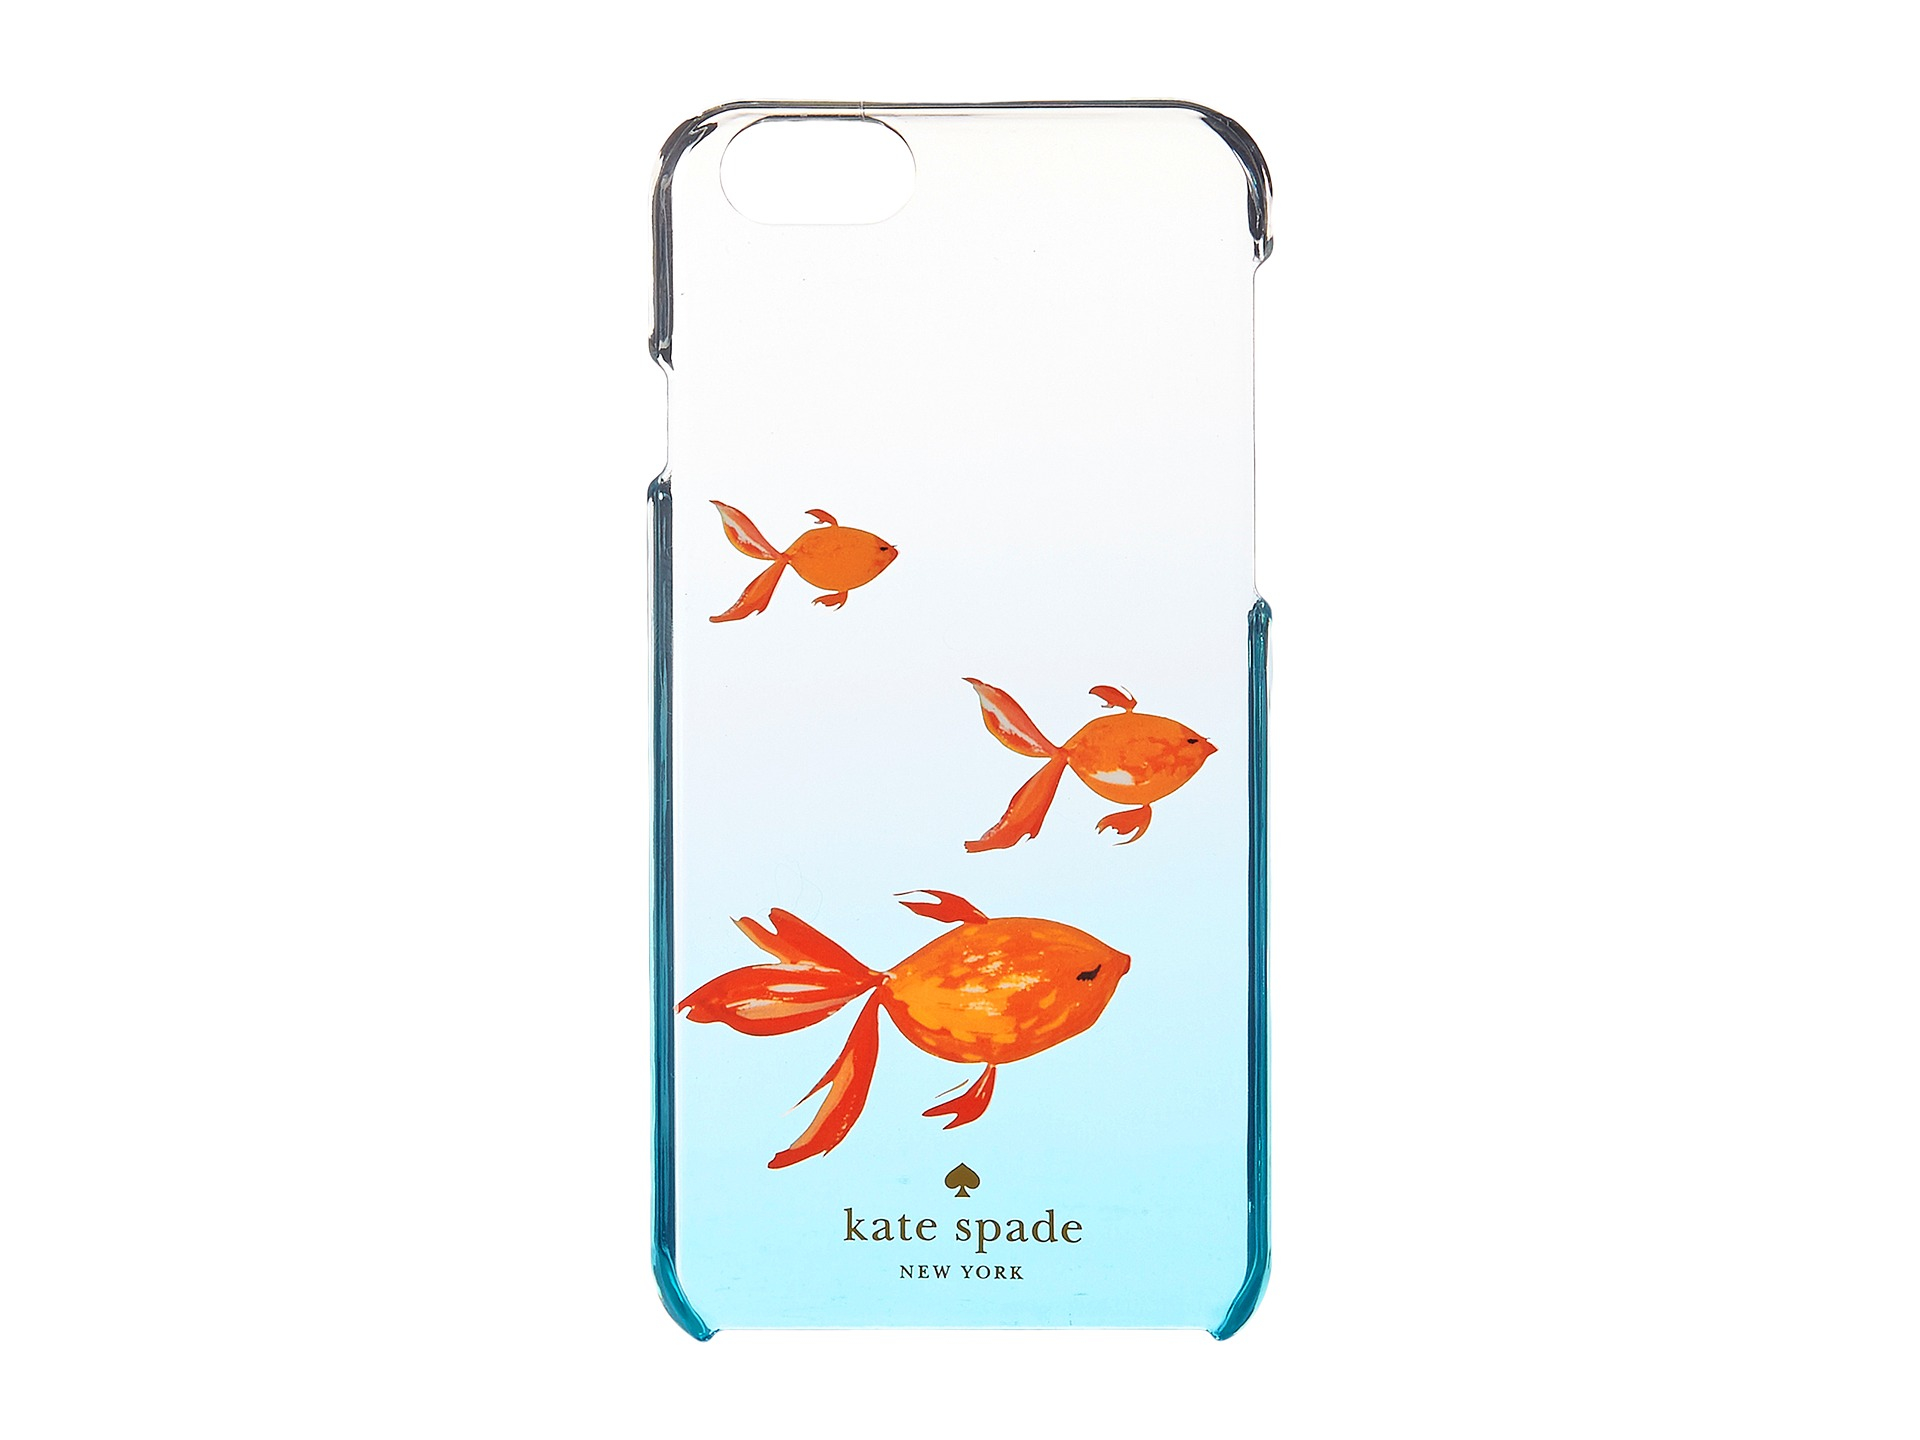 Kate Spade New York Goldfish Iphone Cases For Iphone 6 Lyst